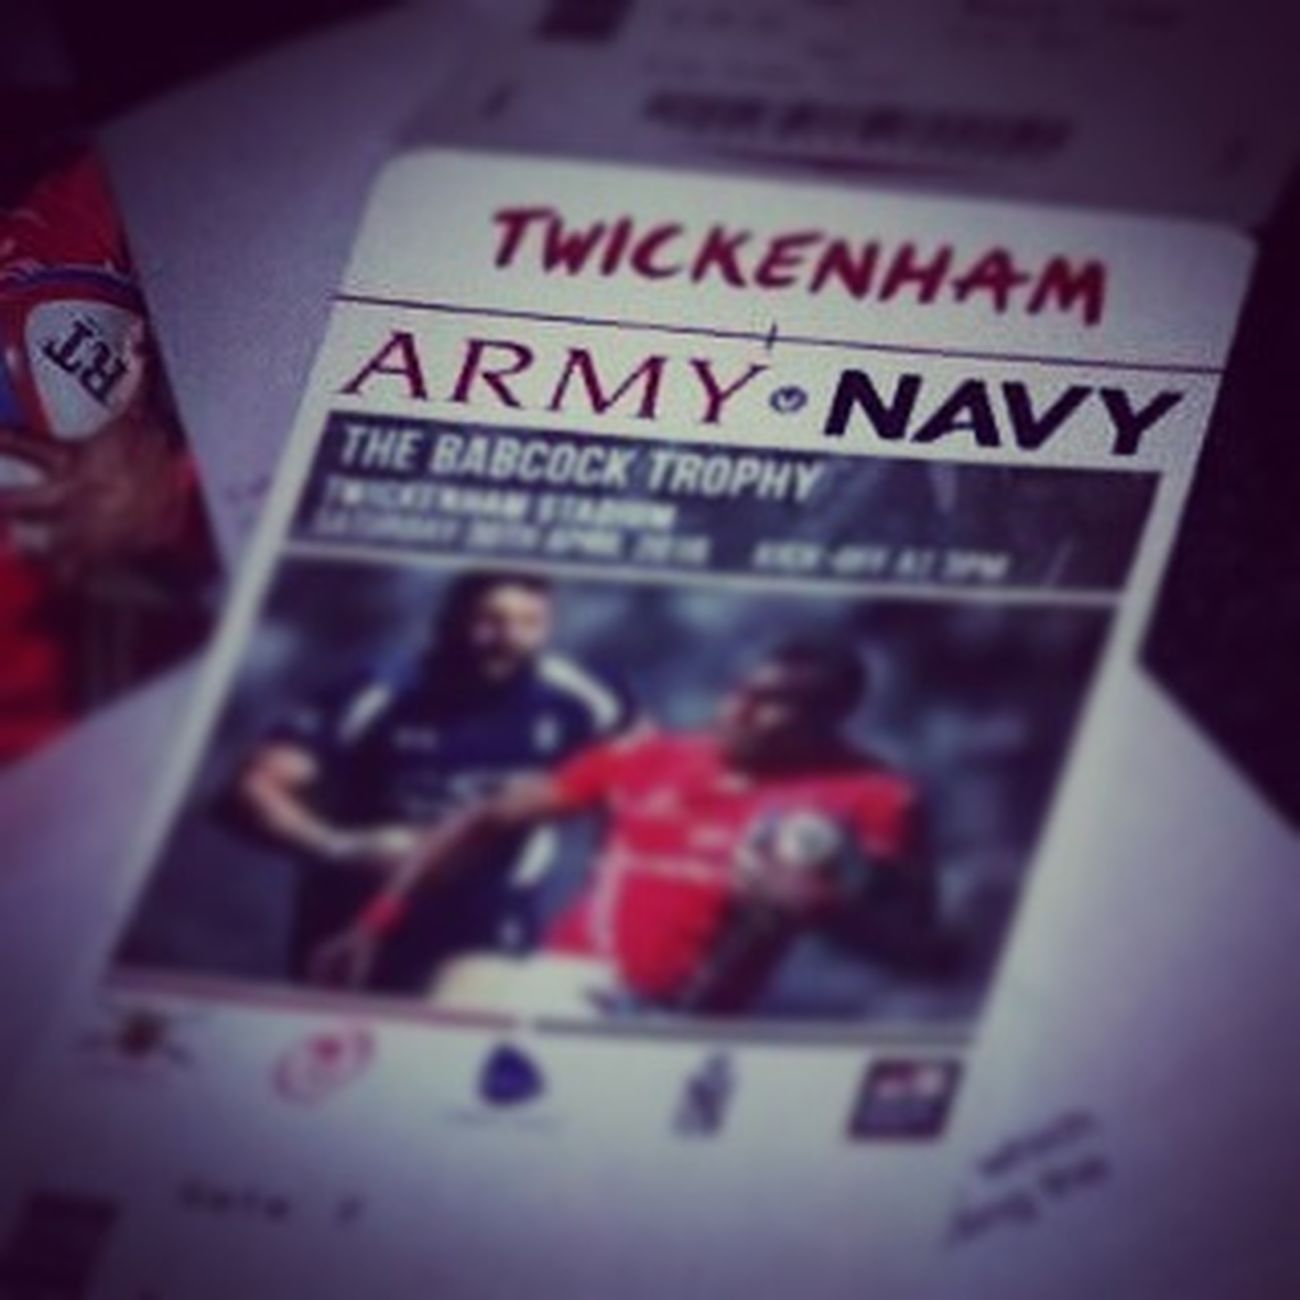 Looking forward to this. Lads weekend! ArmyVsNavy Rugby Tickets Twickenham